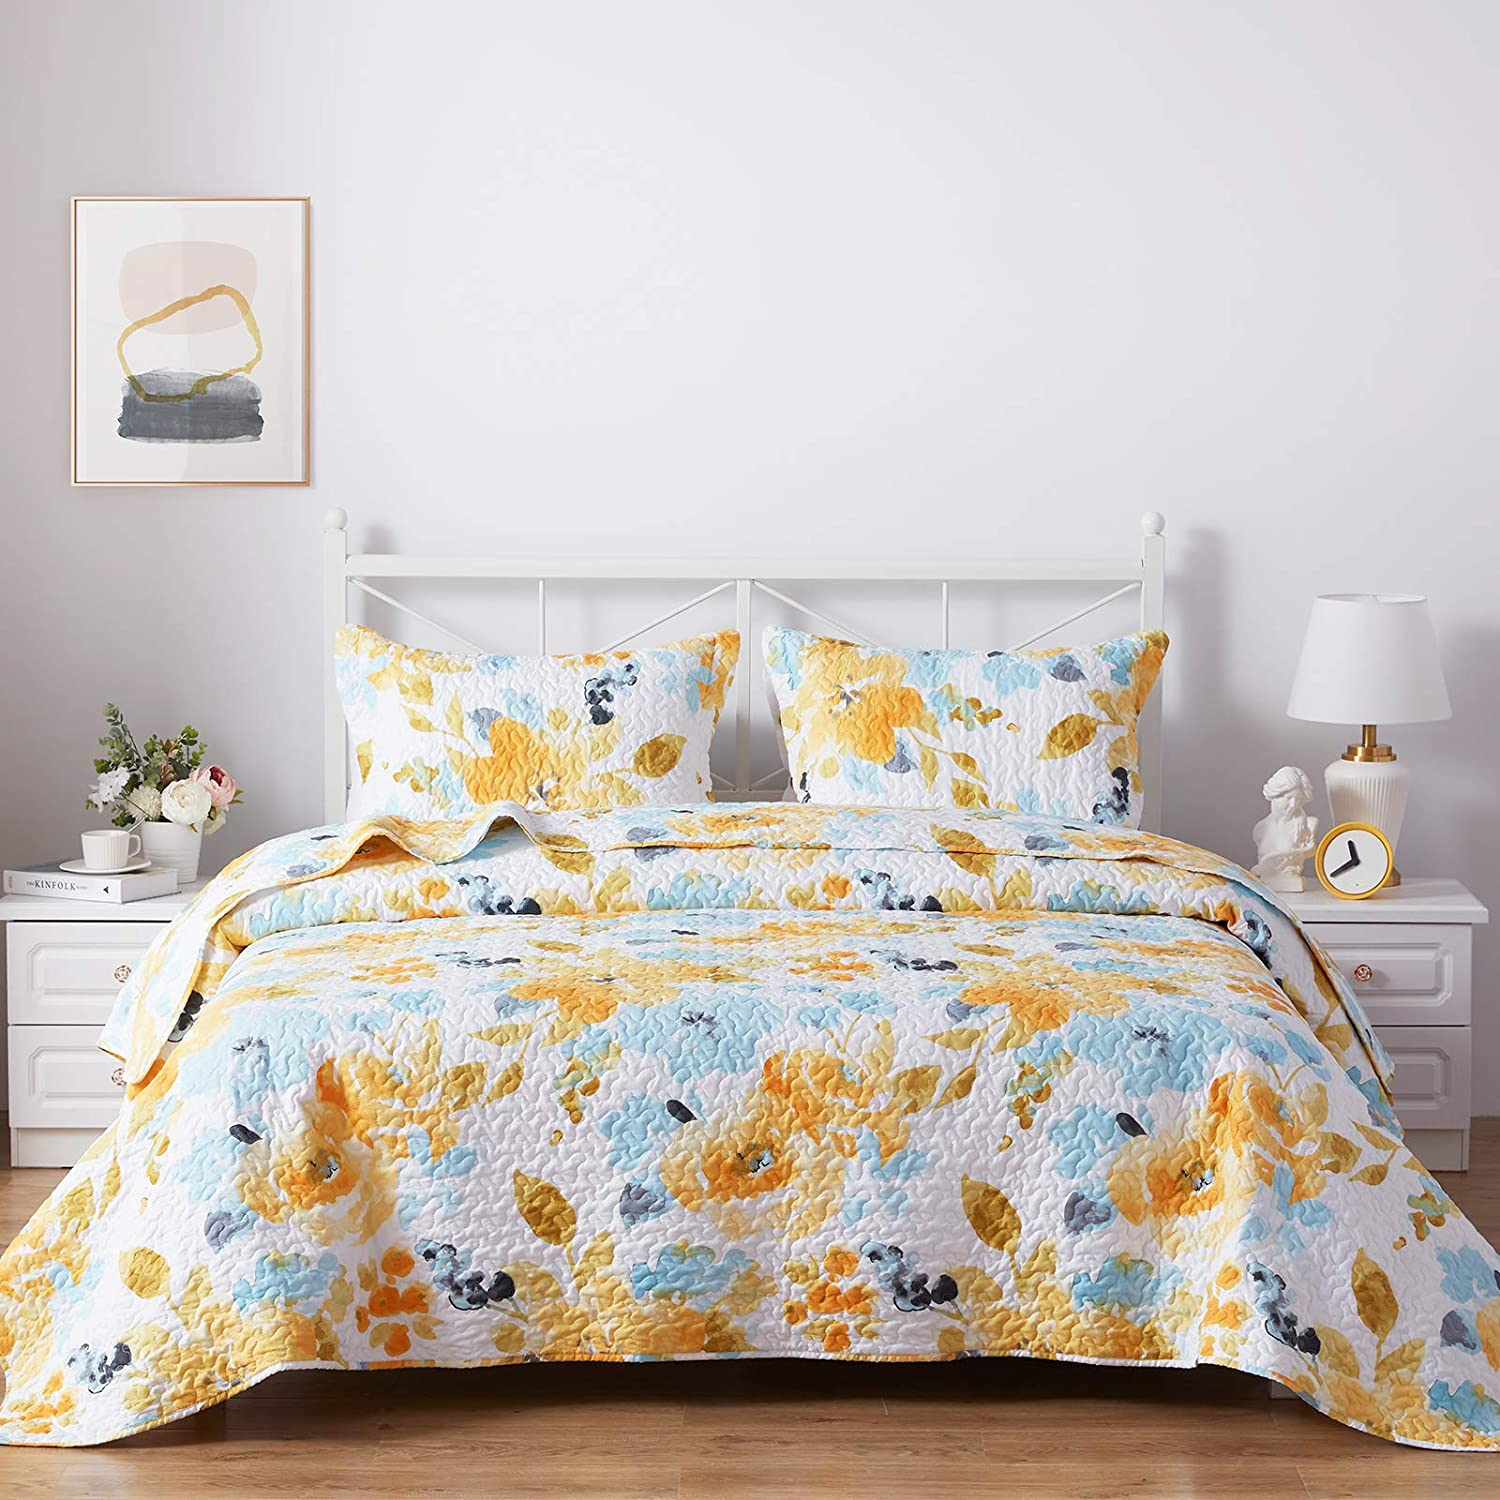 SunStyle Home 3 Piece Bed Quilt Set King Size, Lightweight Microfiber Soft Coverlet Reversible Quilted Pattern Bedspreads Comforter Set for All Season (1 Quilt + 2 Sham, Yellow Flower)